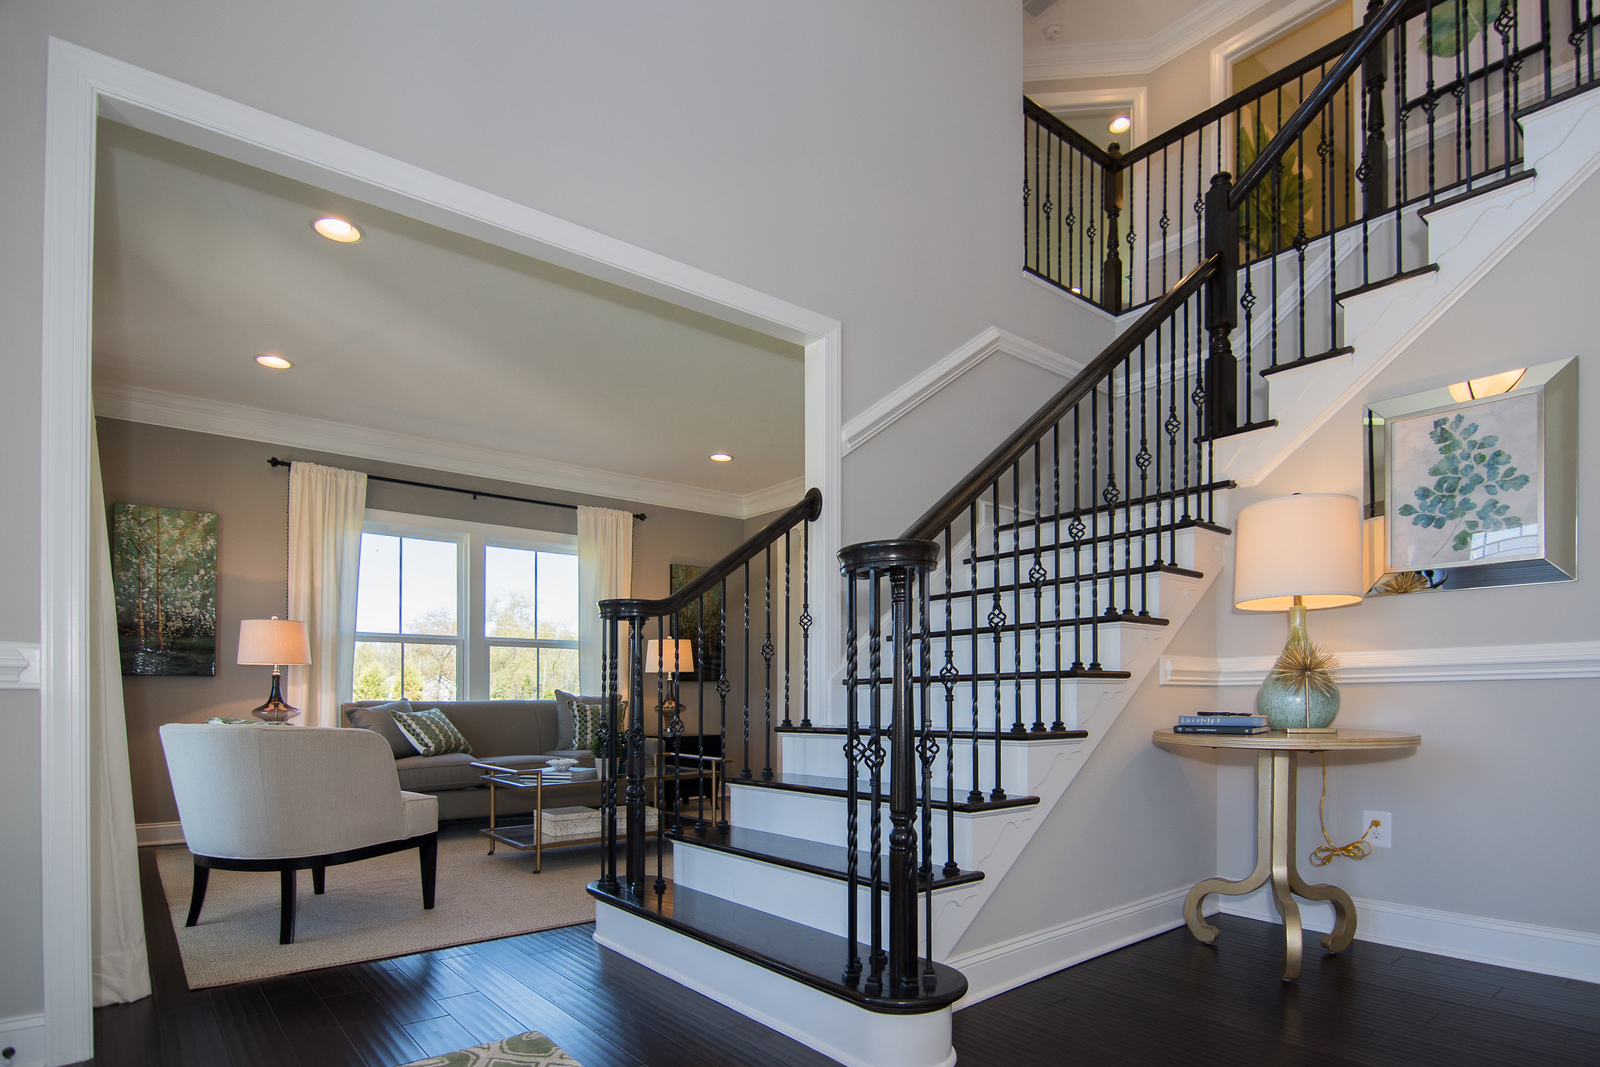 New Courtland Gate Home Model for sale at Cannon Hill in Upper ... on ryan homes courtland gate basement, ryan homes models floor plans, ryan homes courtland gate model, ryan homes ranch floor plans,